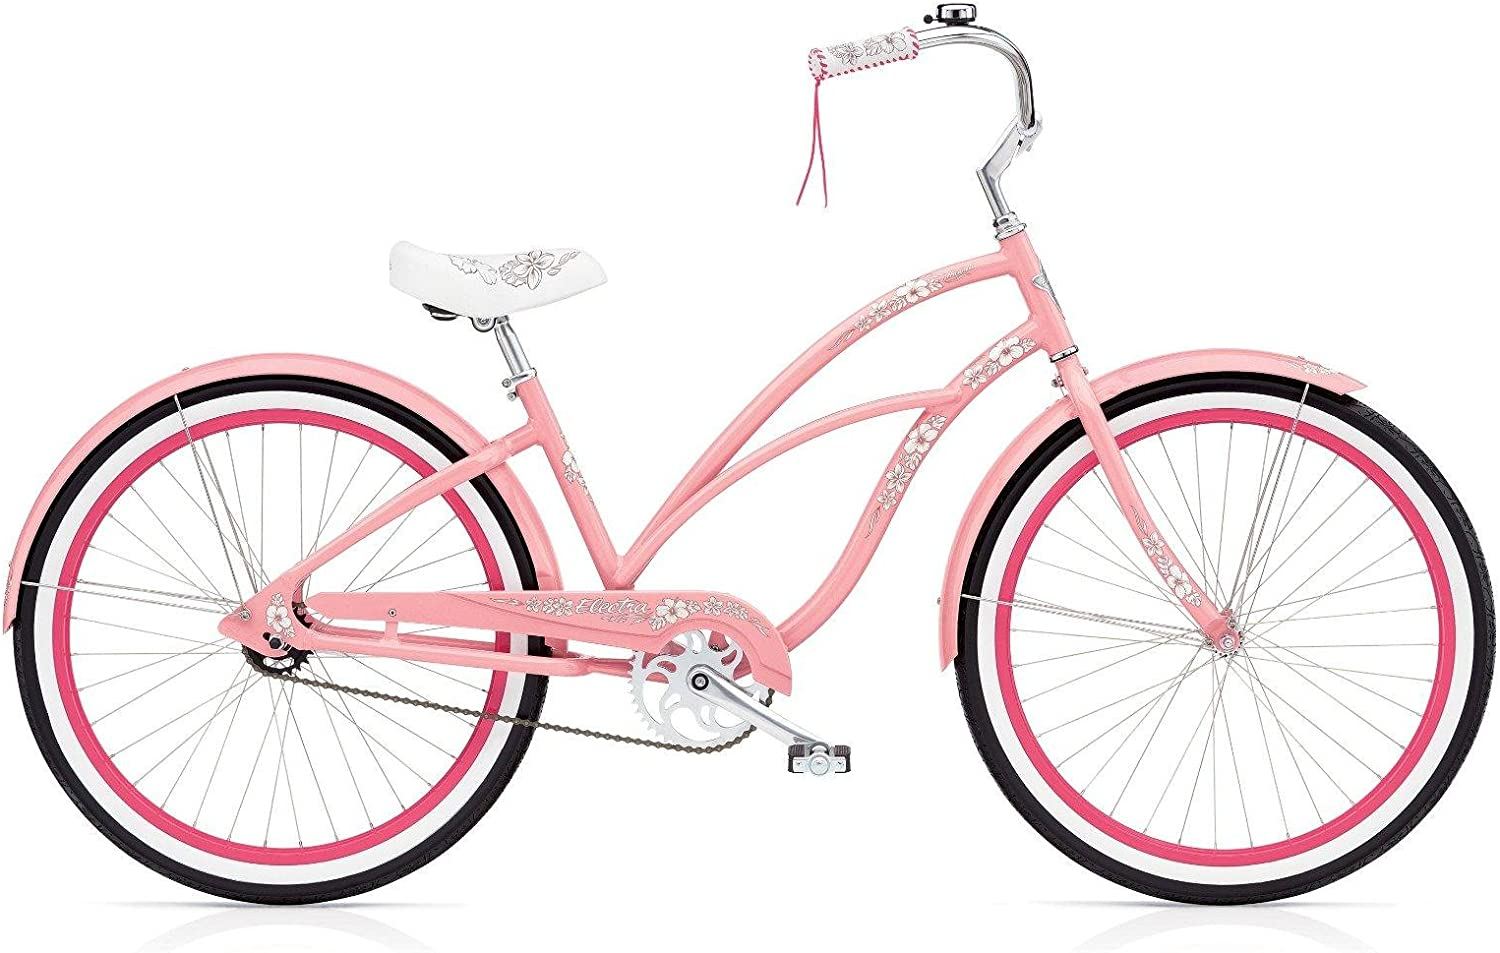 Electra Cruiser Hawaii 3i ladies 3 marchas Mujer bicicleta Cruiser ...